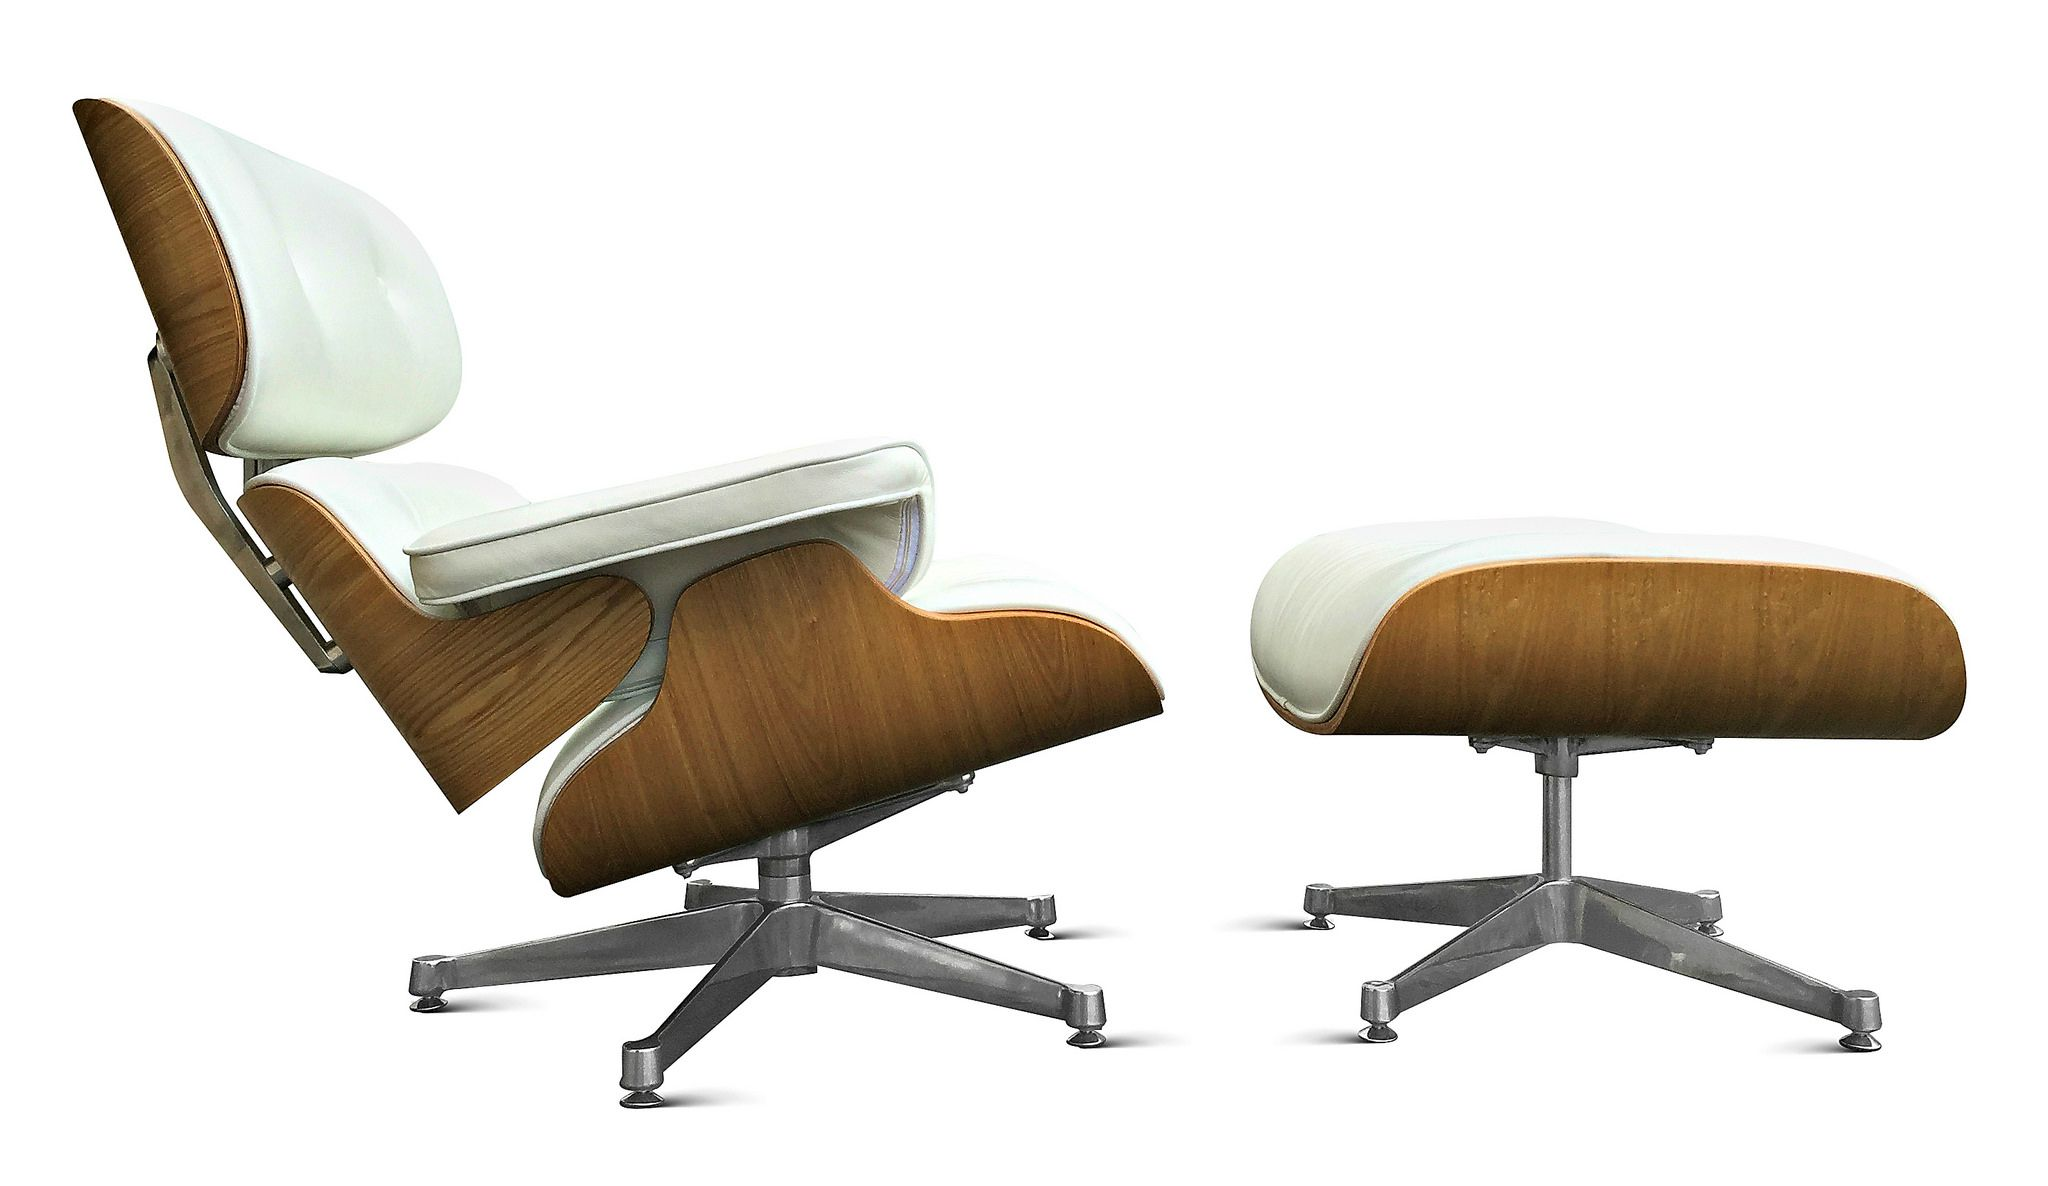 Strange How To Identify A Genuine Eames Lounge Chair Machost Co Dining Chair Design Ideas Machostcouk